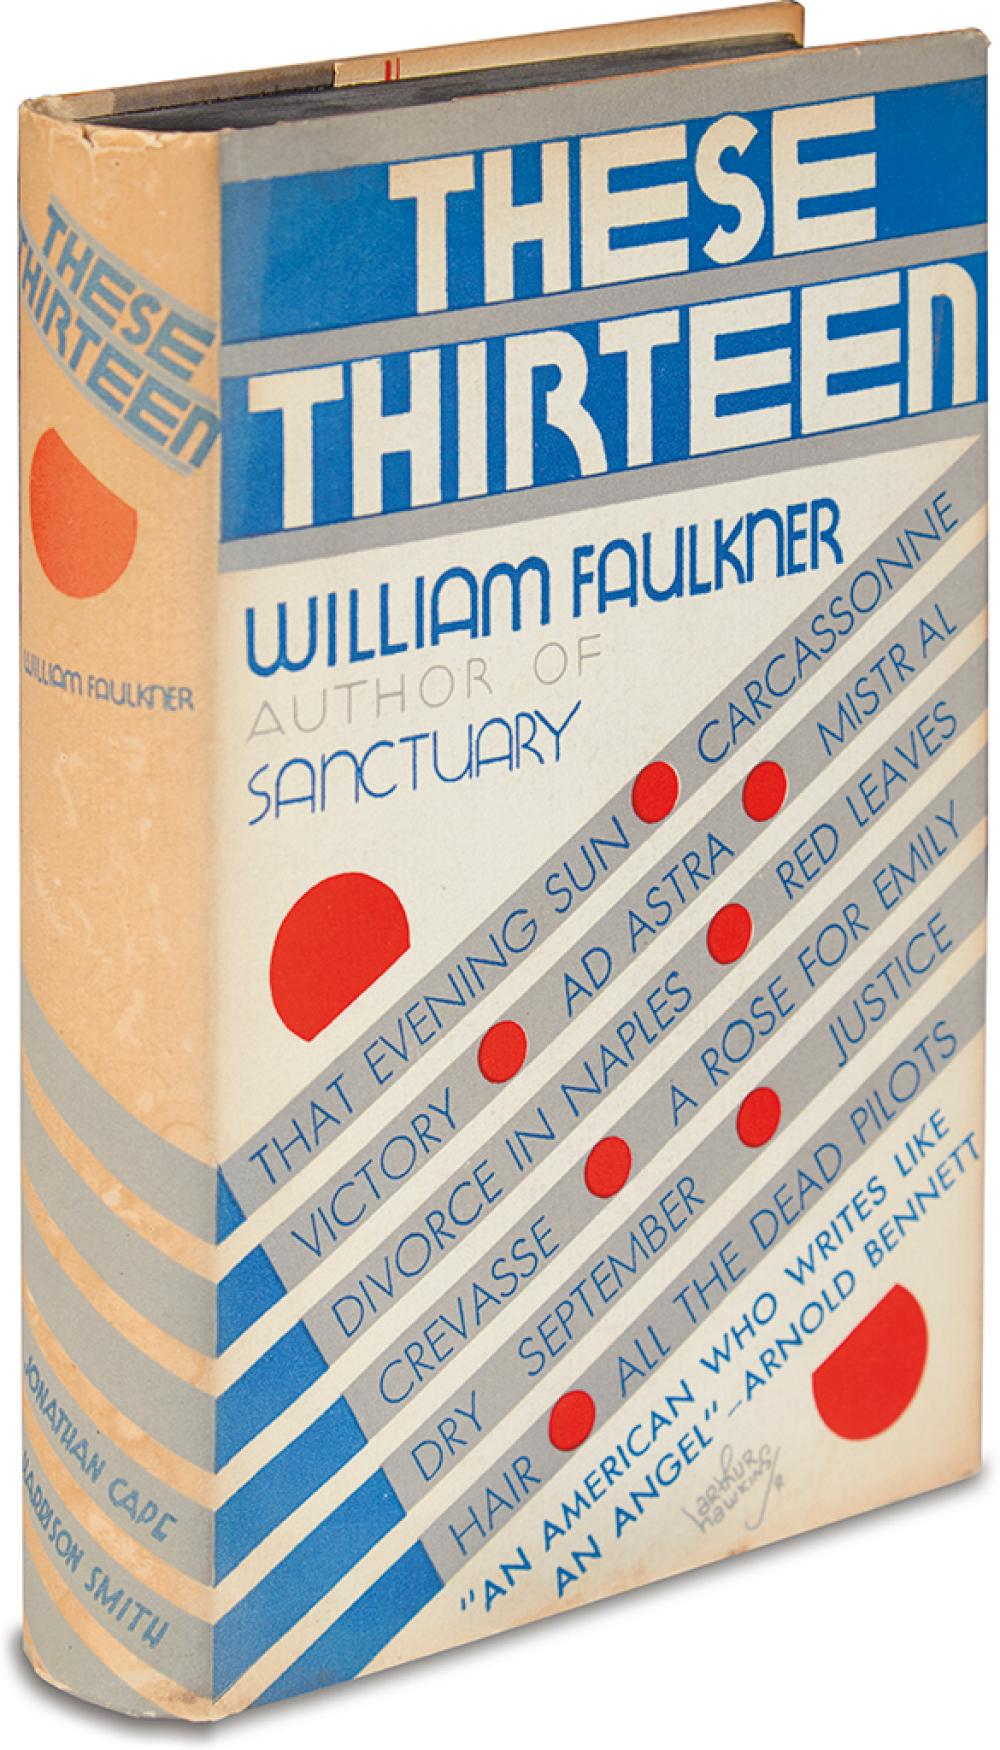 FAULKNER, WILLIAM. These Thirteen.